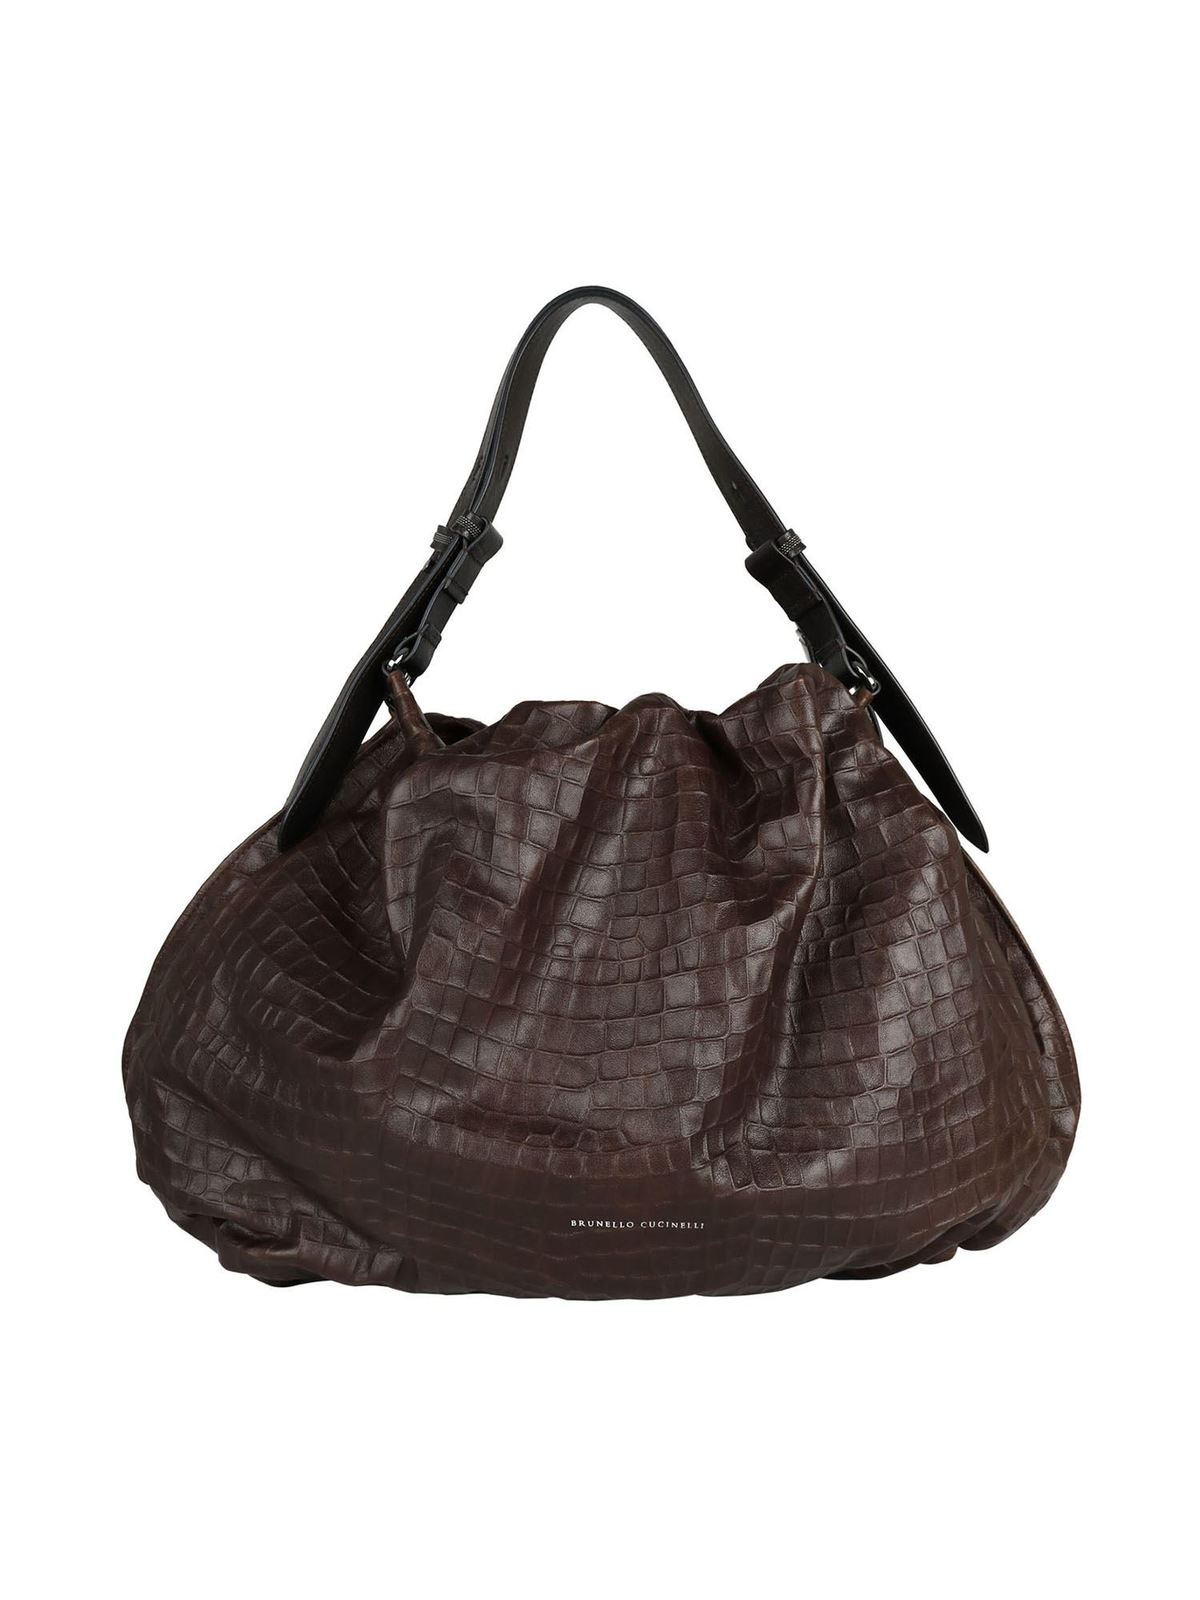 Brunello Cucinelli LOGO CROCODILE PRINT BAG IN BROWN